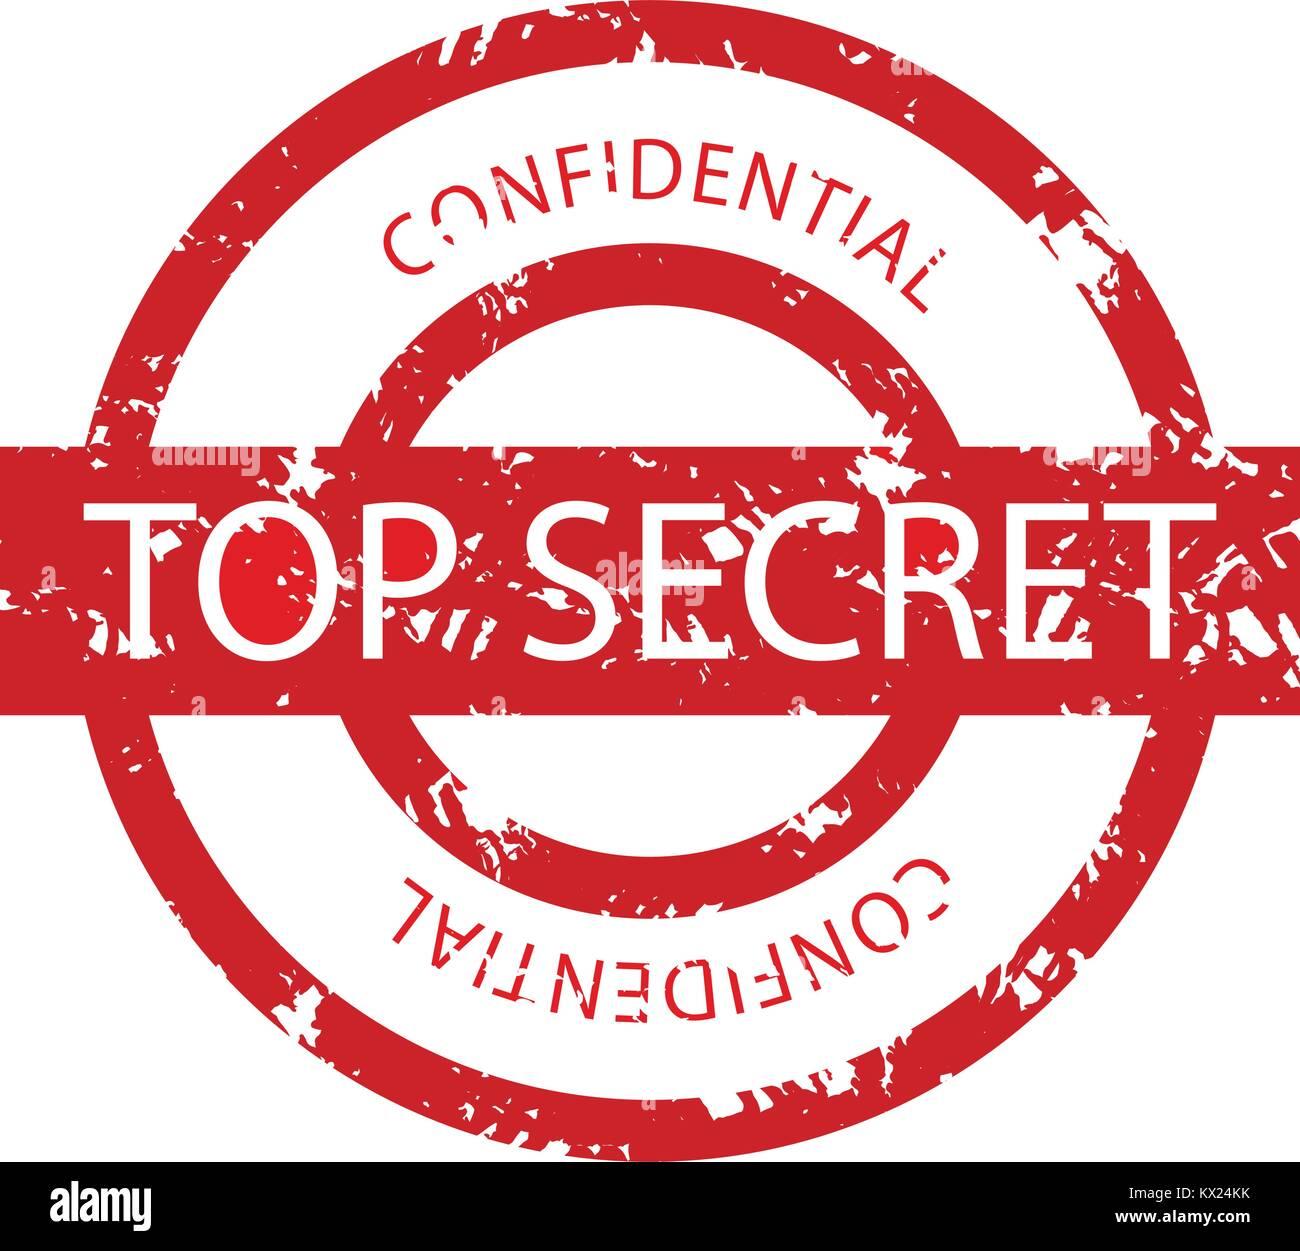 Top Secret Confidential Rubber Stamp Vector Grunge Seal Private And Print Military Illustration